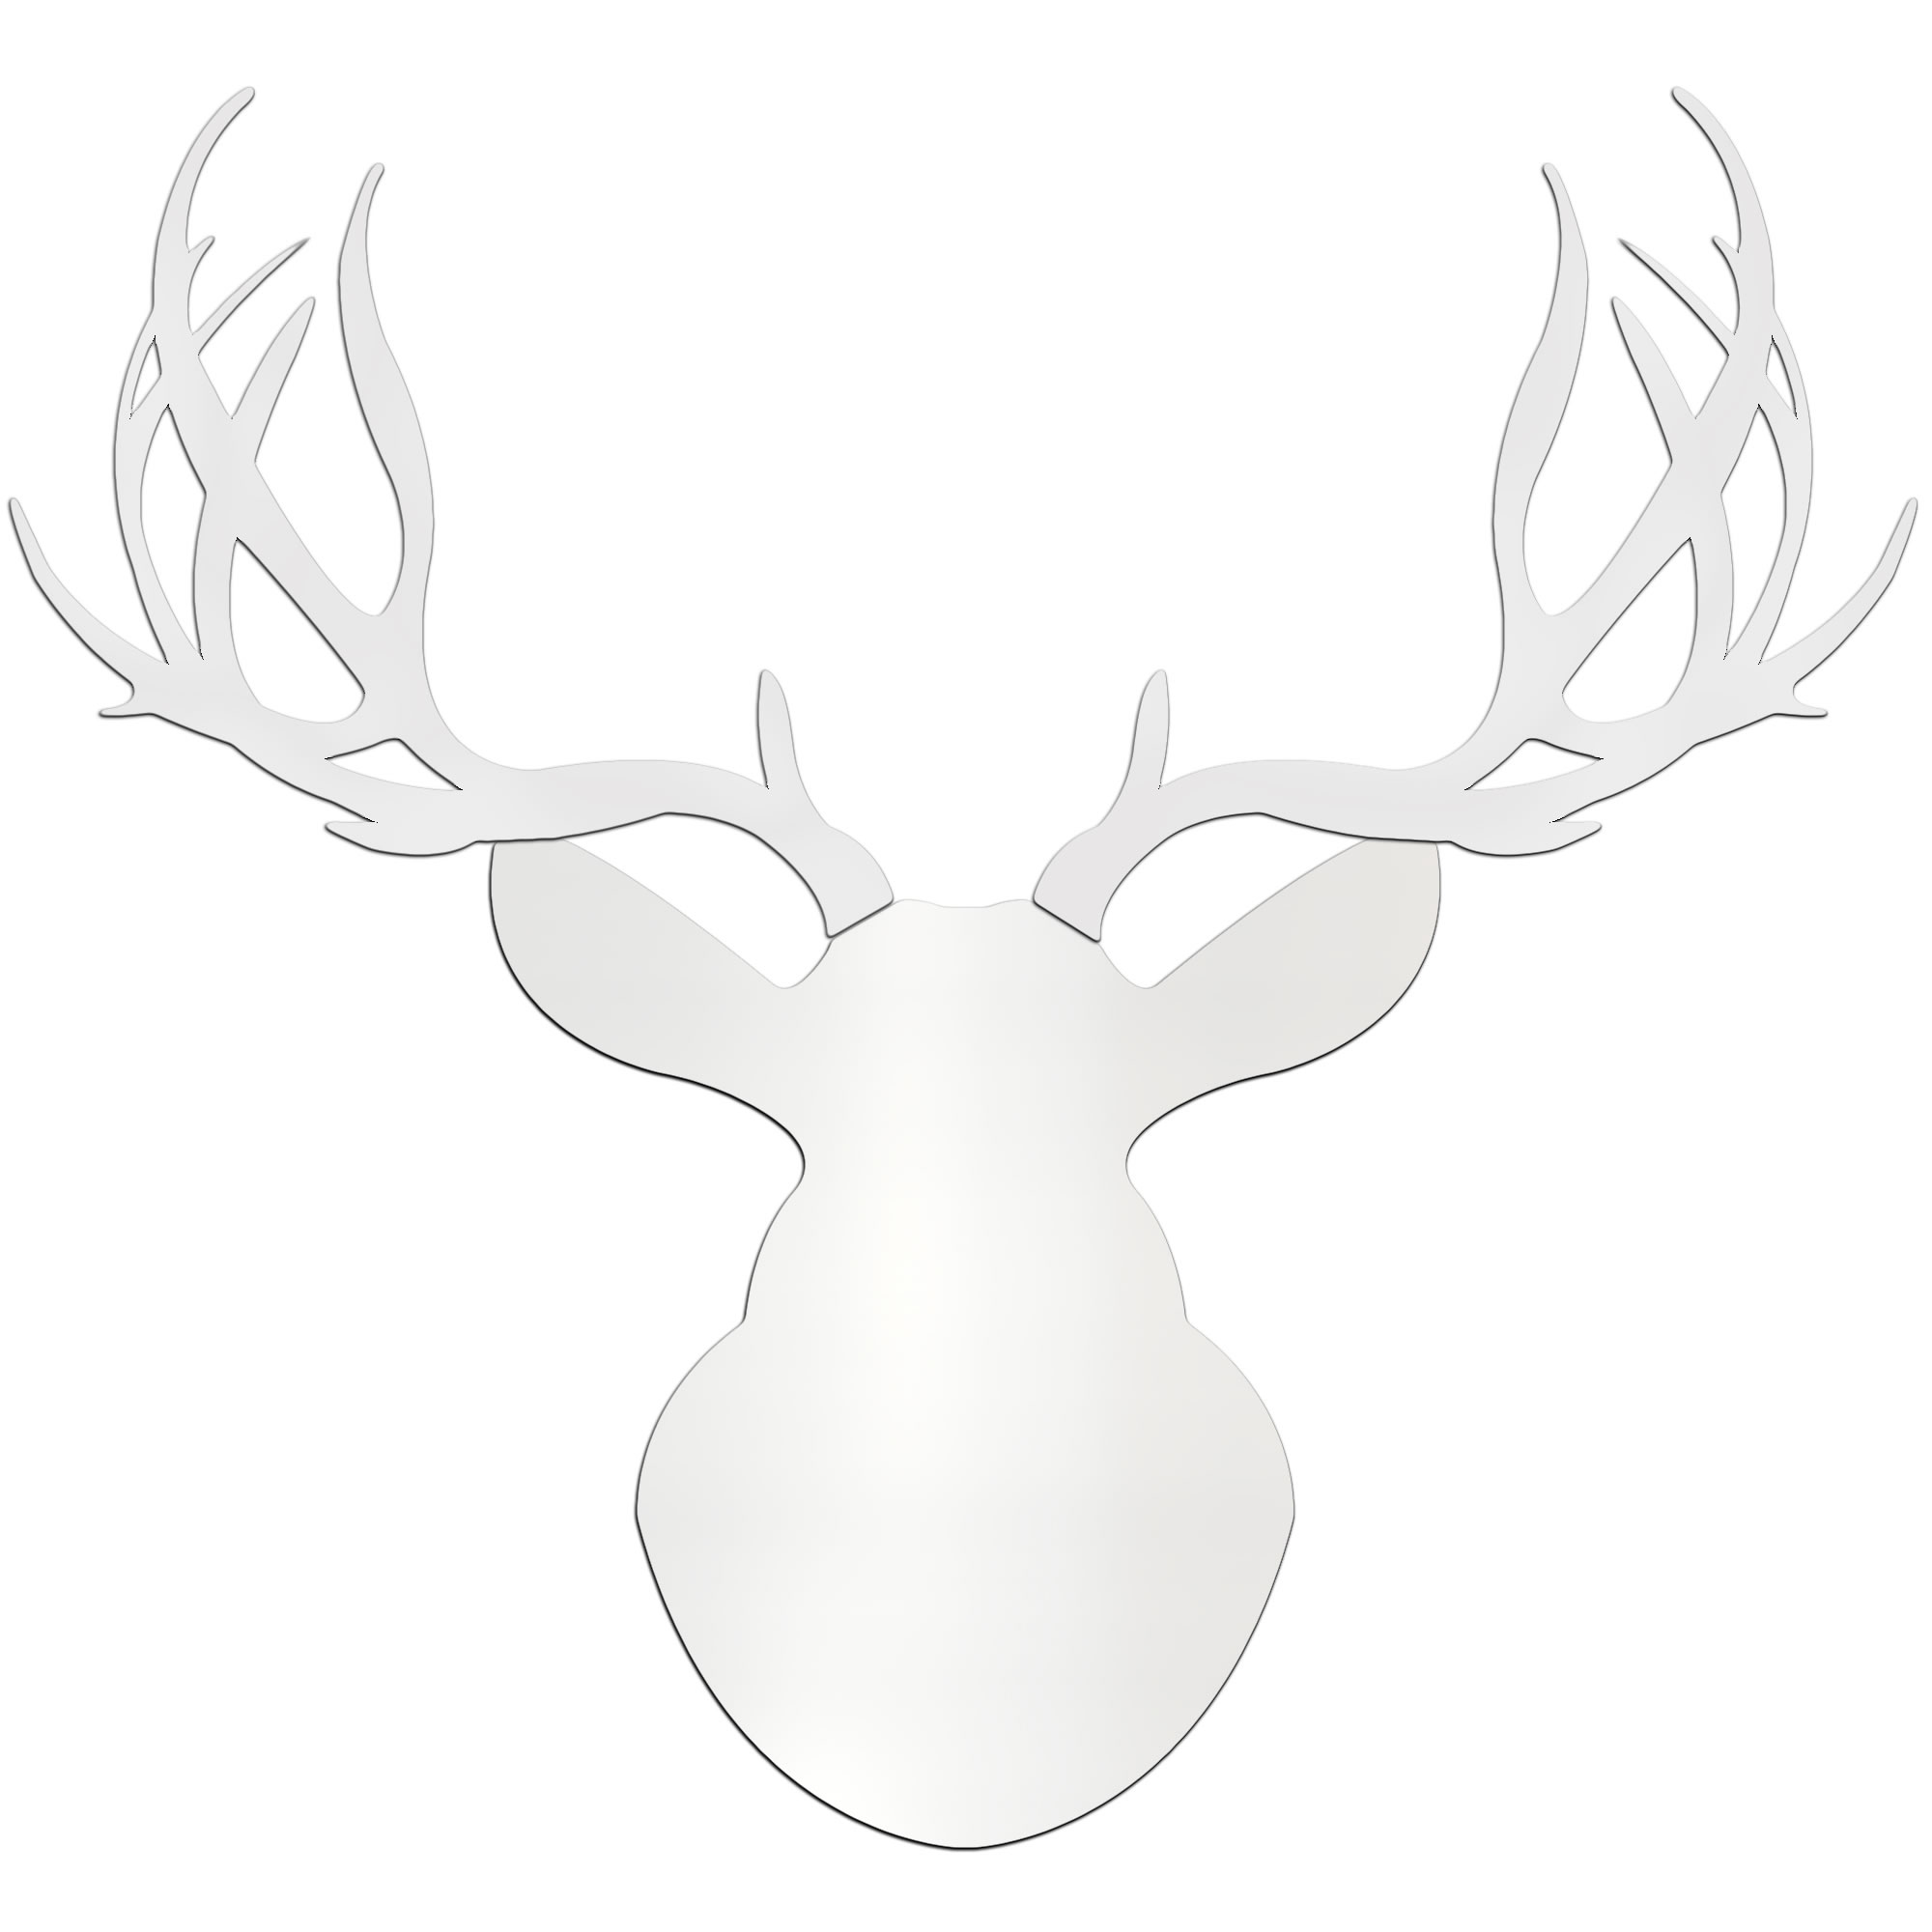 SNOW BUCK - 36x36 in. Pure White Deer Cut-Out